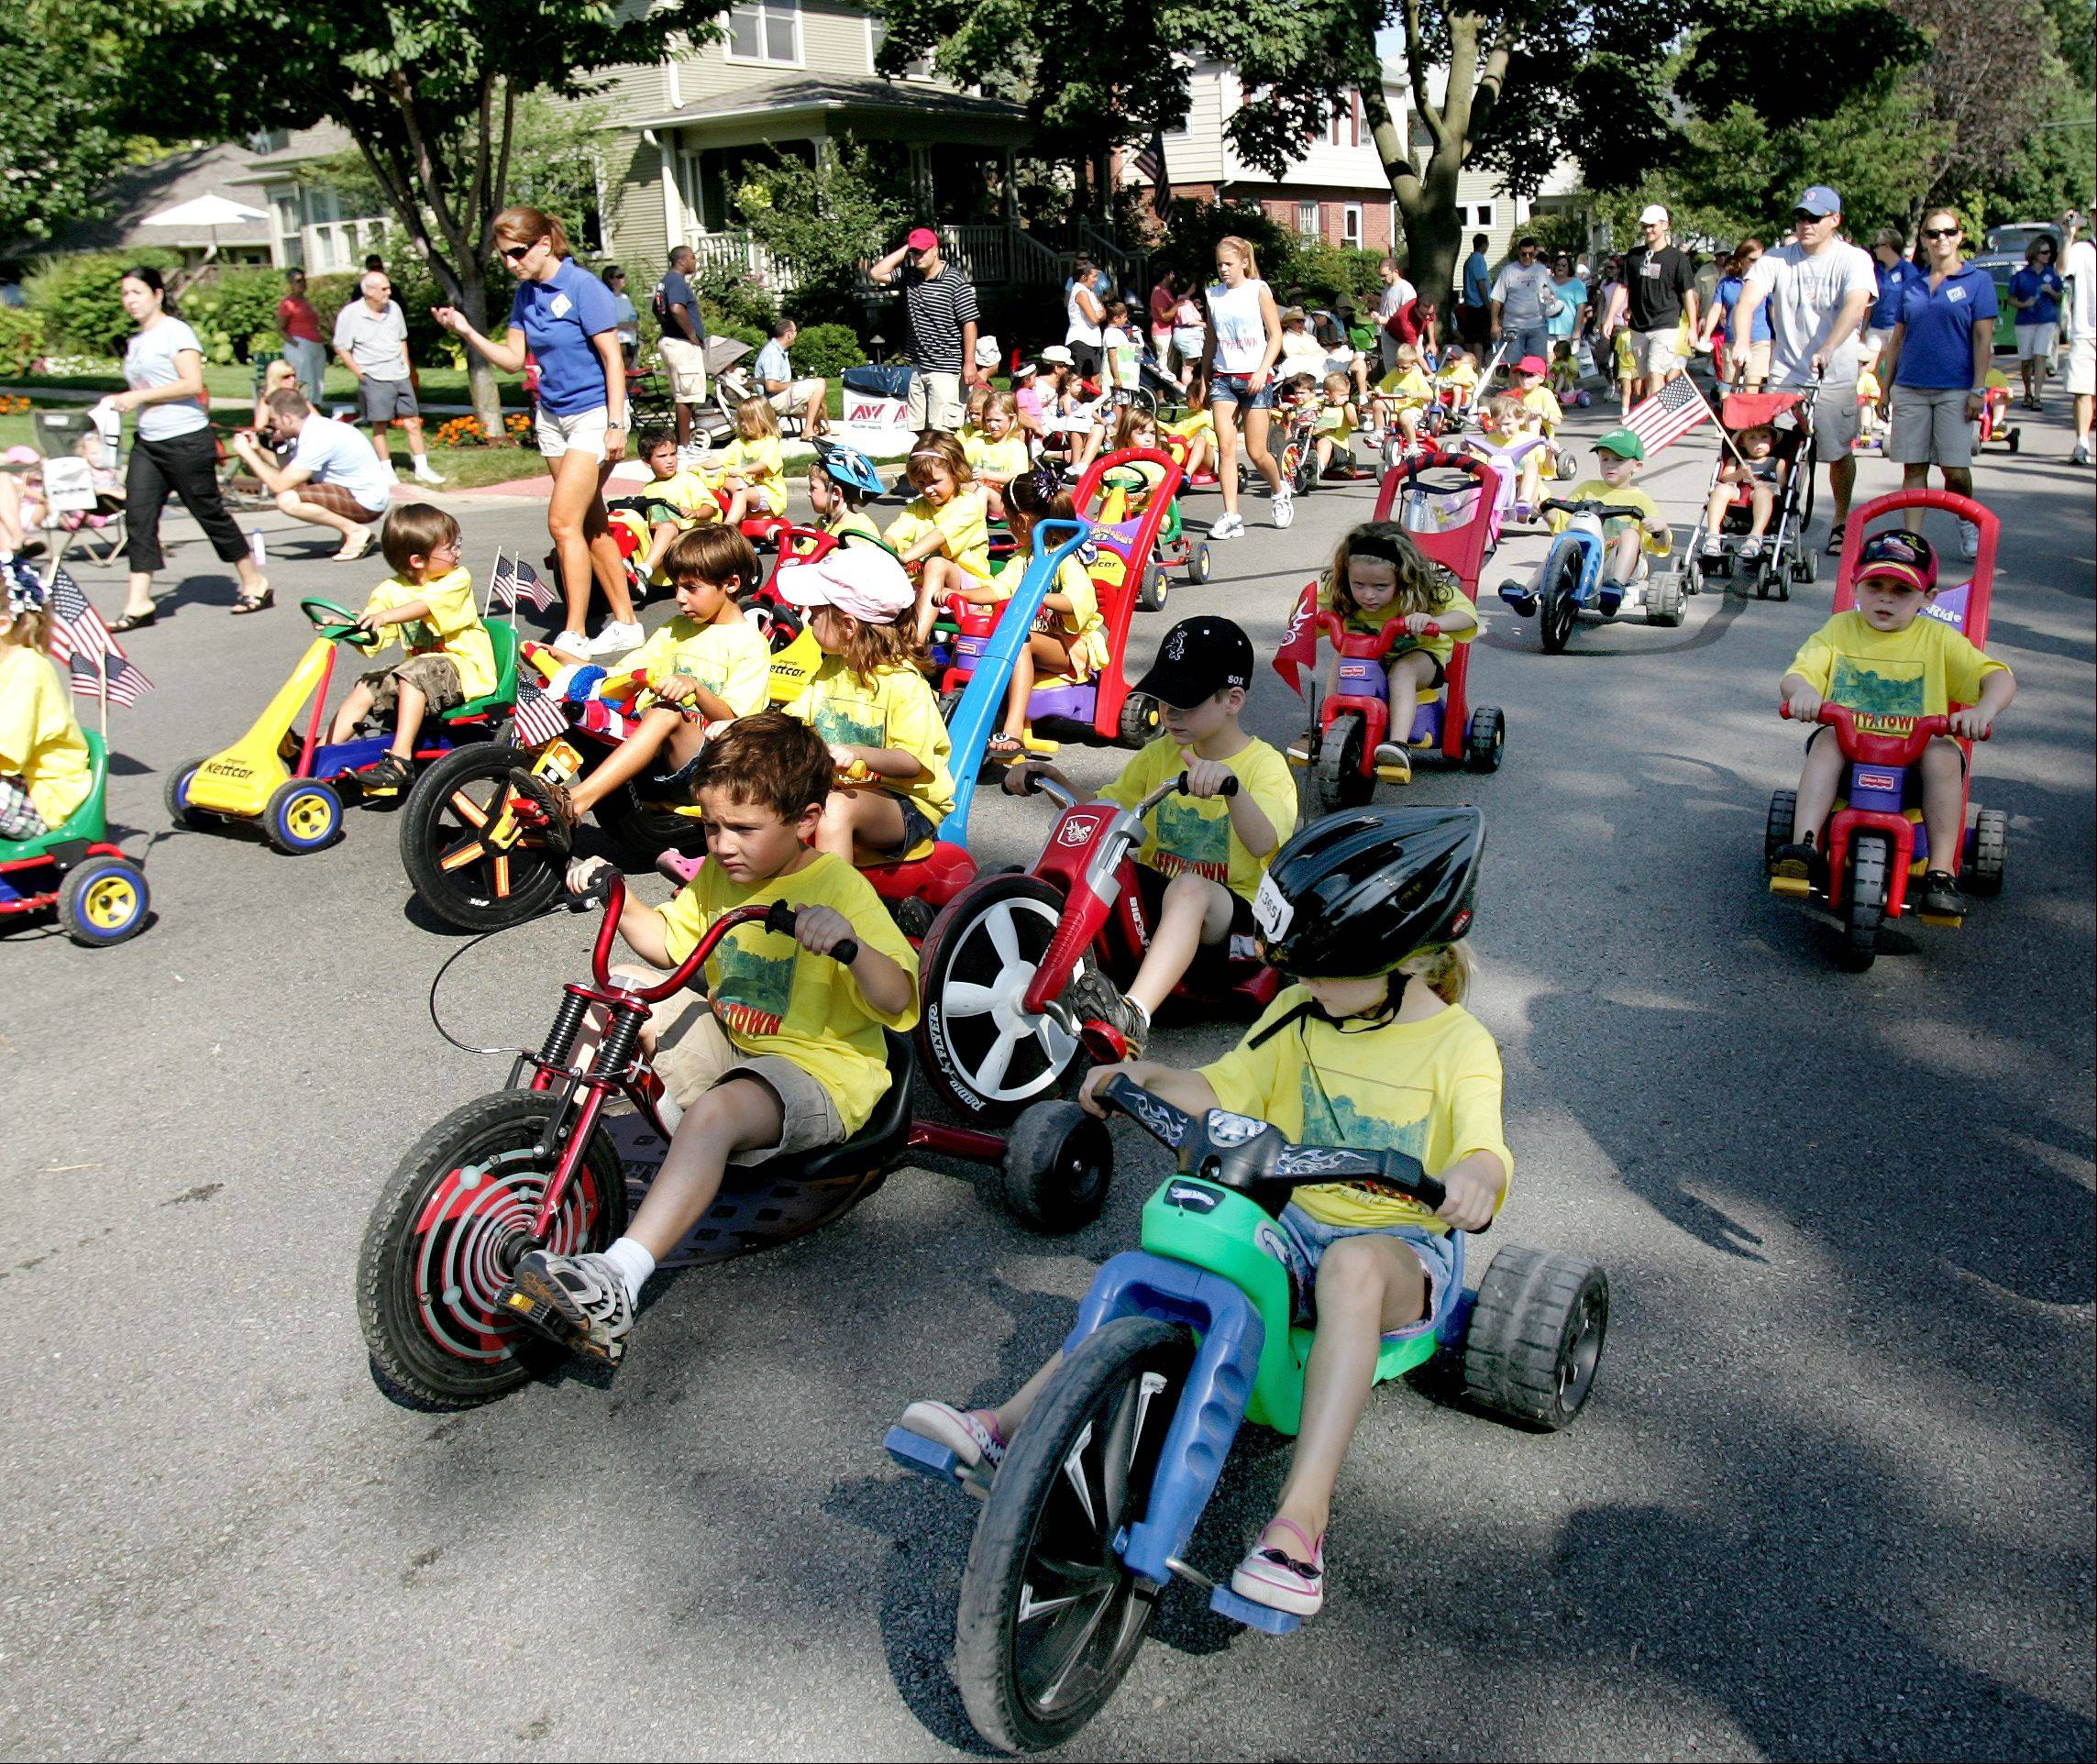 Kids on big wheels representing the Safety Town in Naperville are a frequent unit in the Labor Day Parade during the Last Fling. This year's parade steps off at 10 a.m. Monday, Sept. 2, on Mill Street at Naperville North High School.